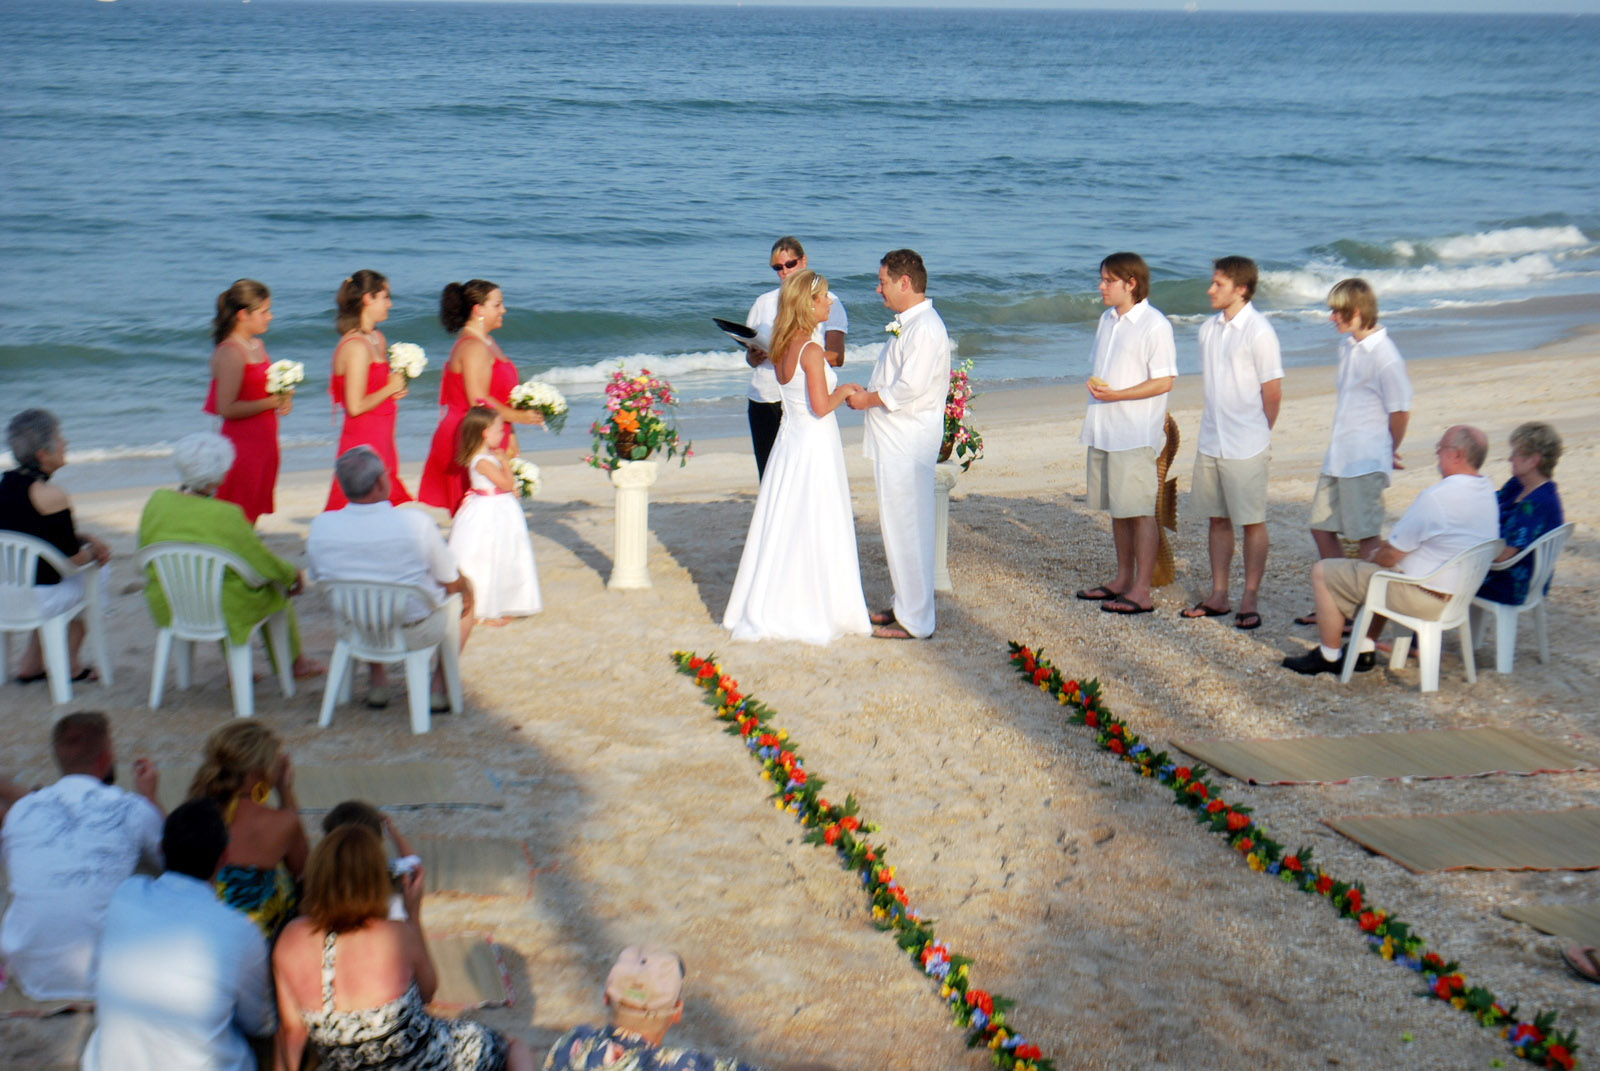 The Romantic & Inspiring Beach Wedding